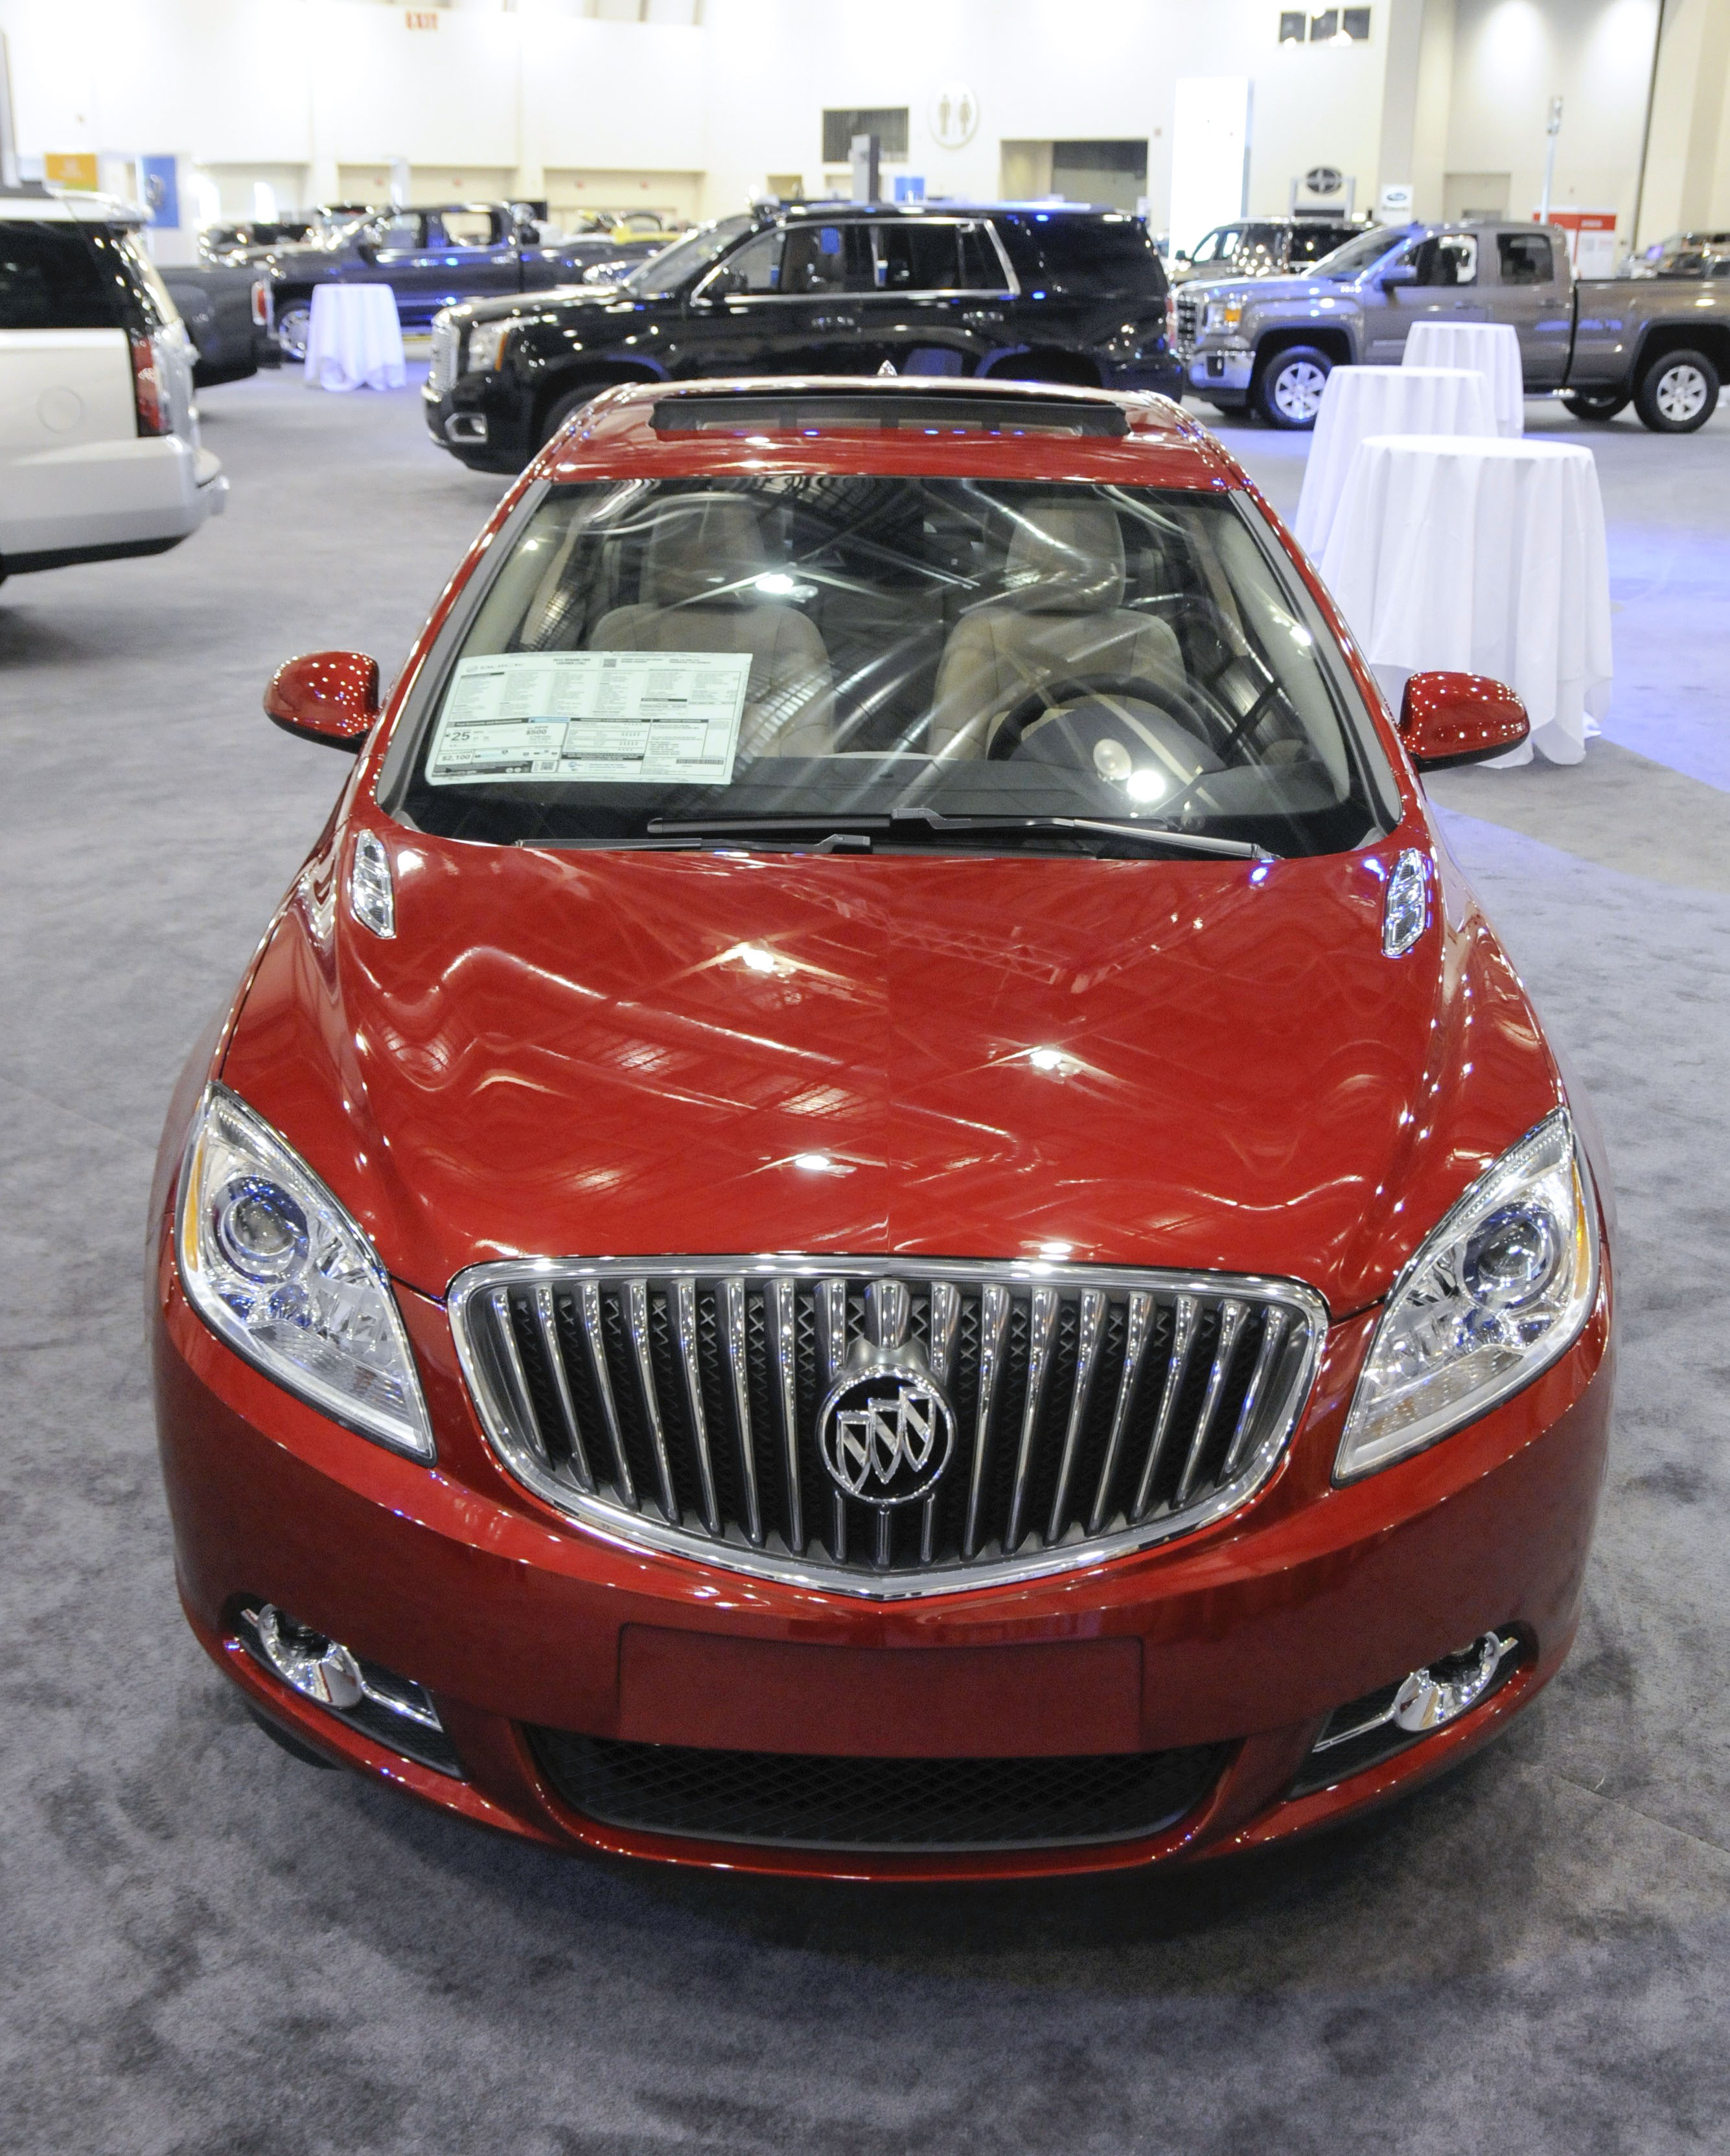 Michigan International Auto Show Open For Final Day